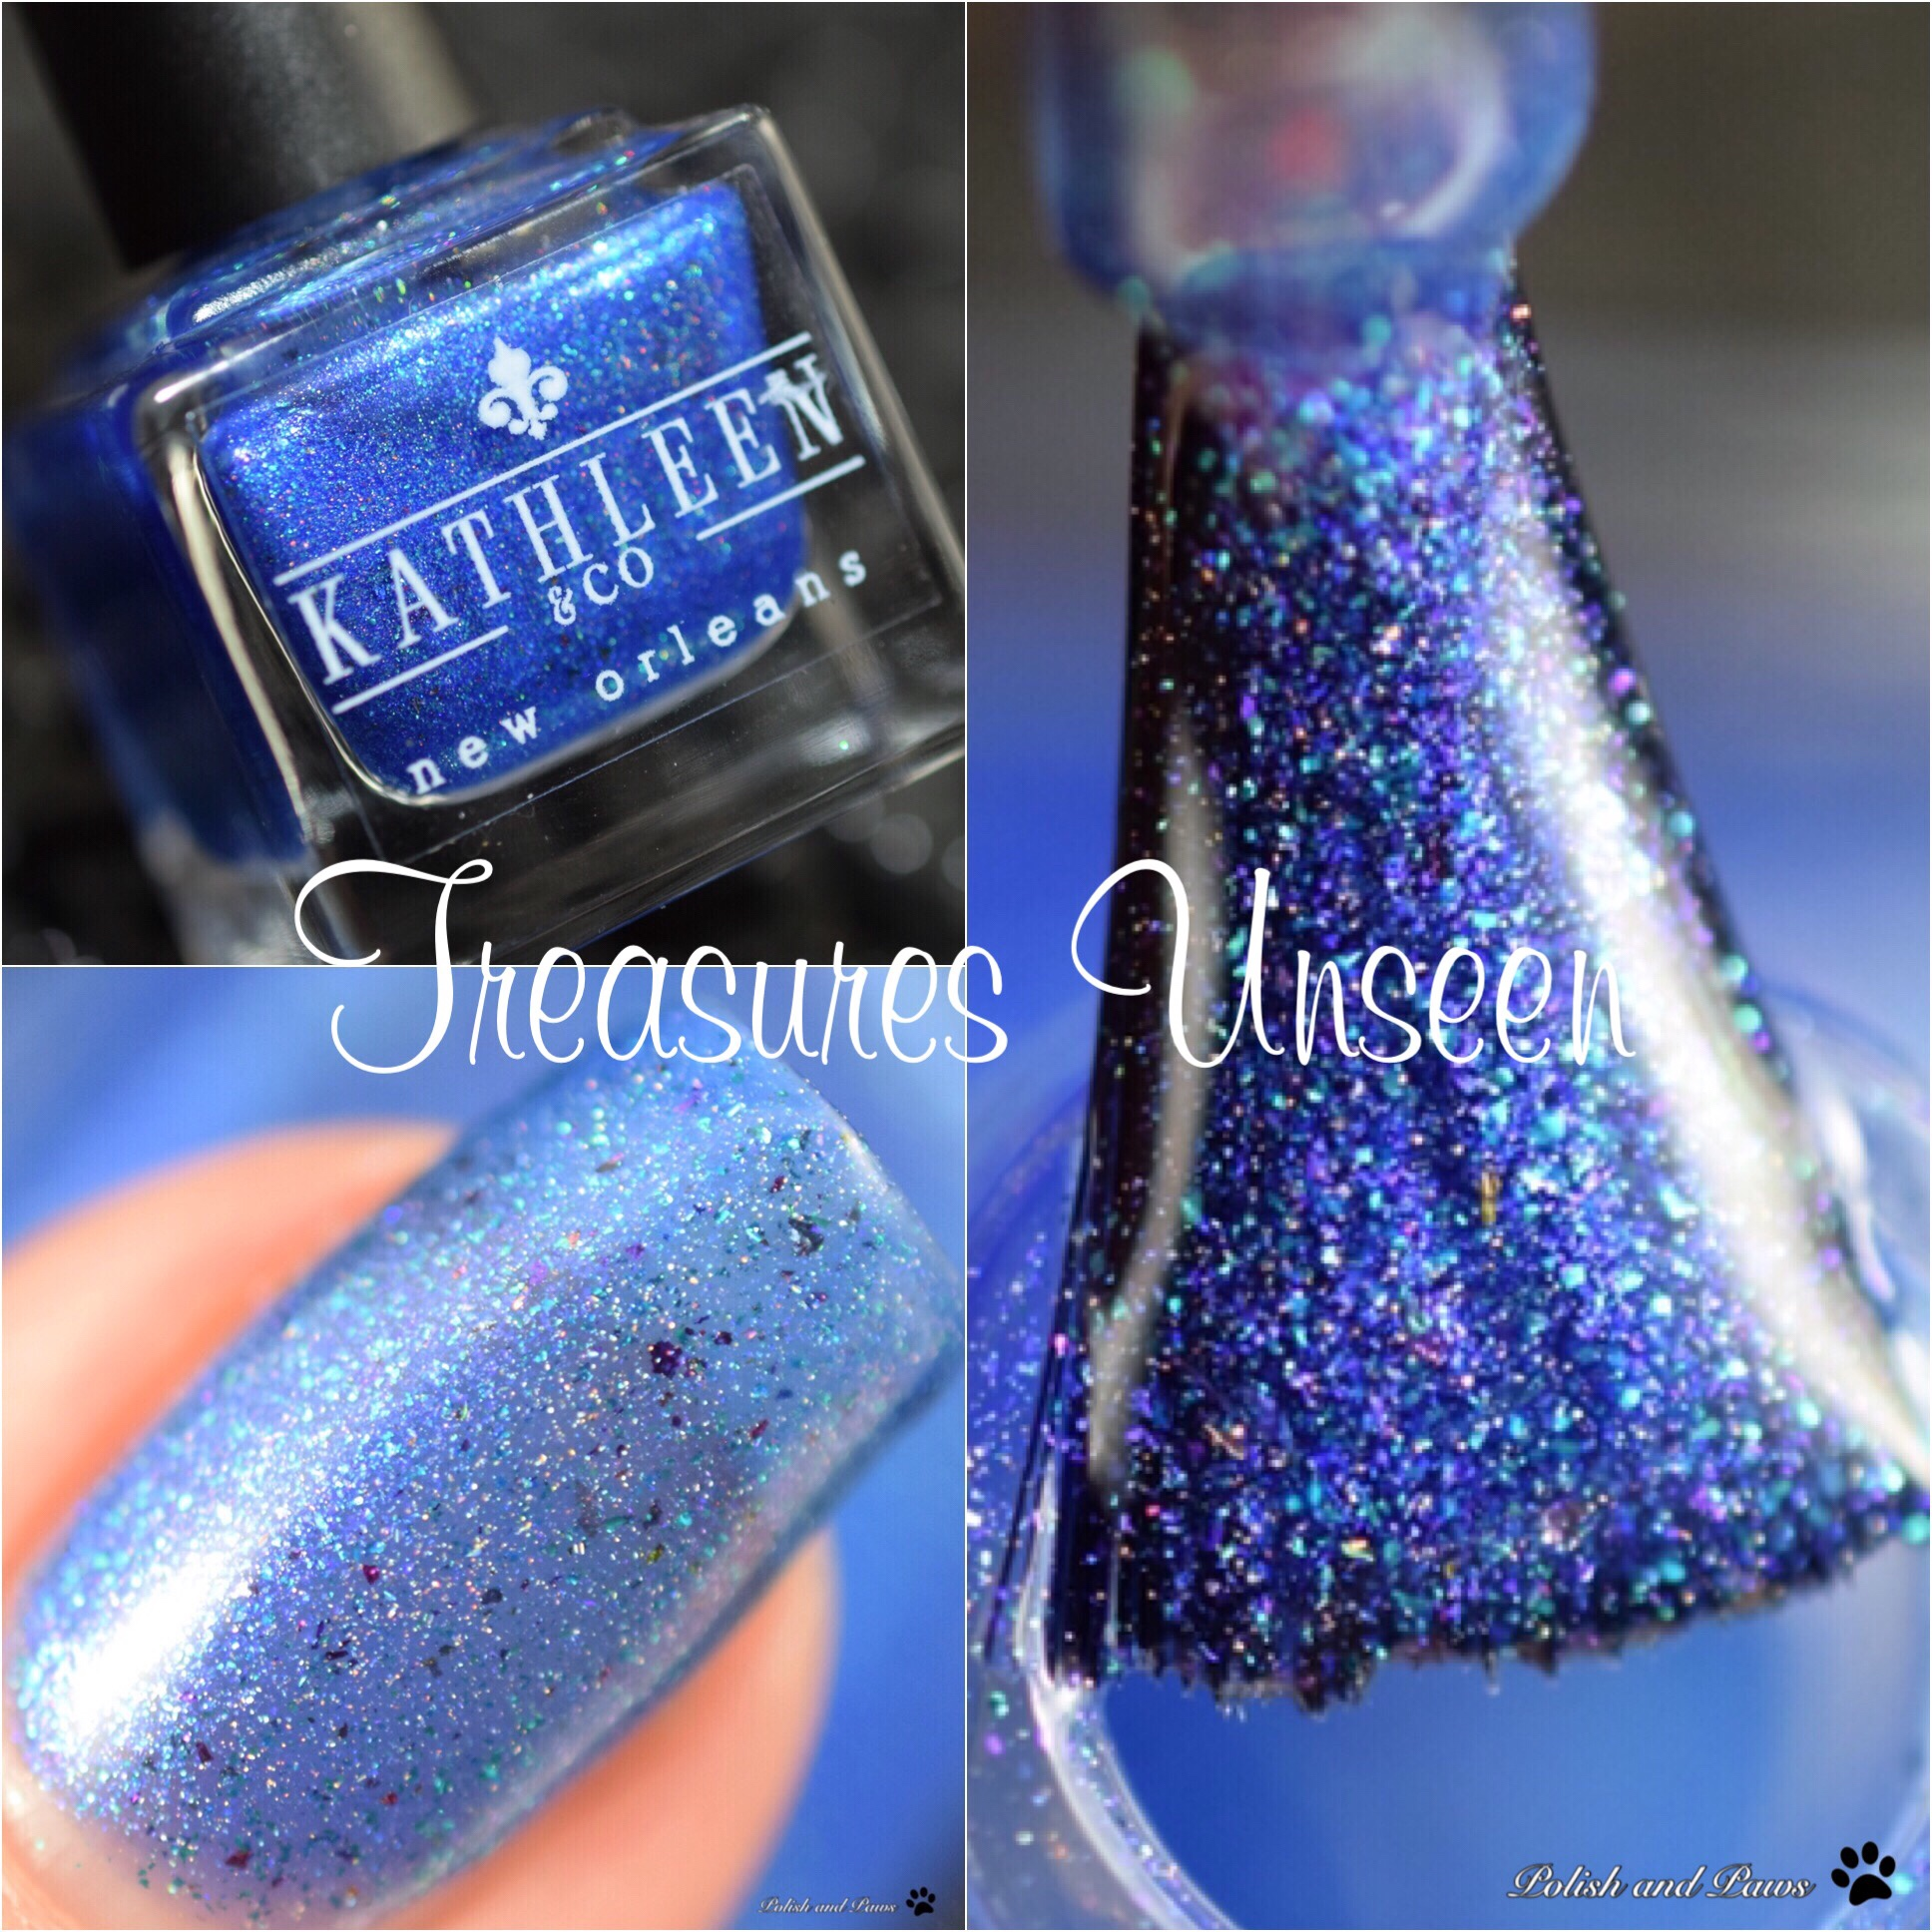 Kathleen & Co Treasures Unseen